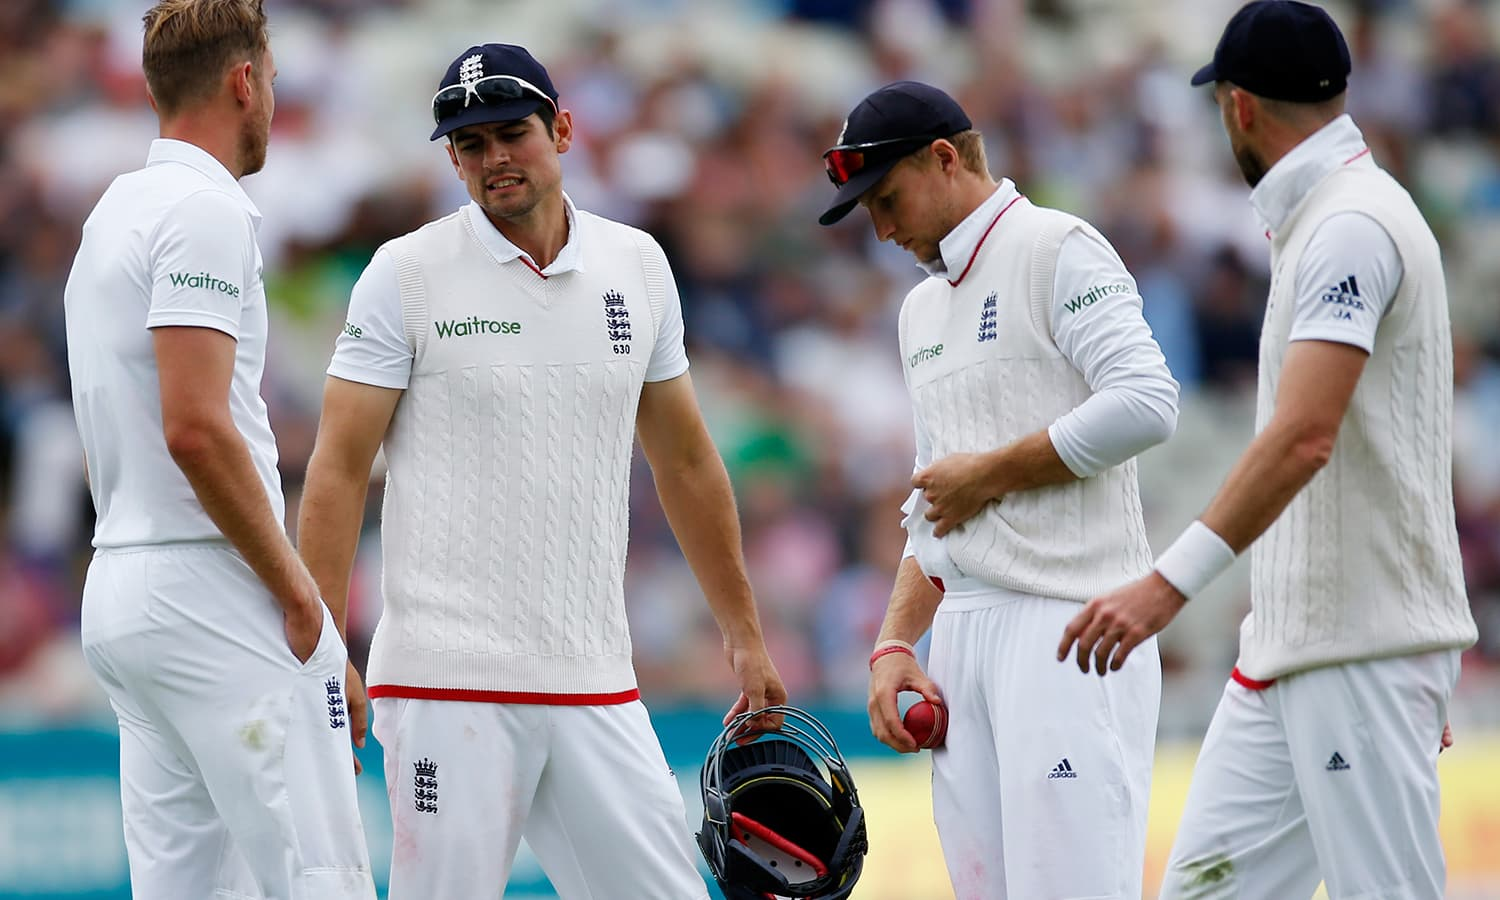 England's Joe Root shines the cricket ball (2nd R) as Stuart Broad and Alastair Cook look on during the match. — Reuters